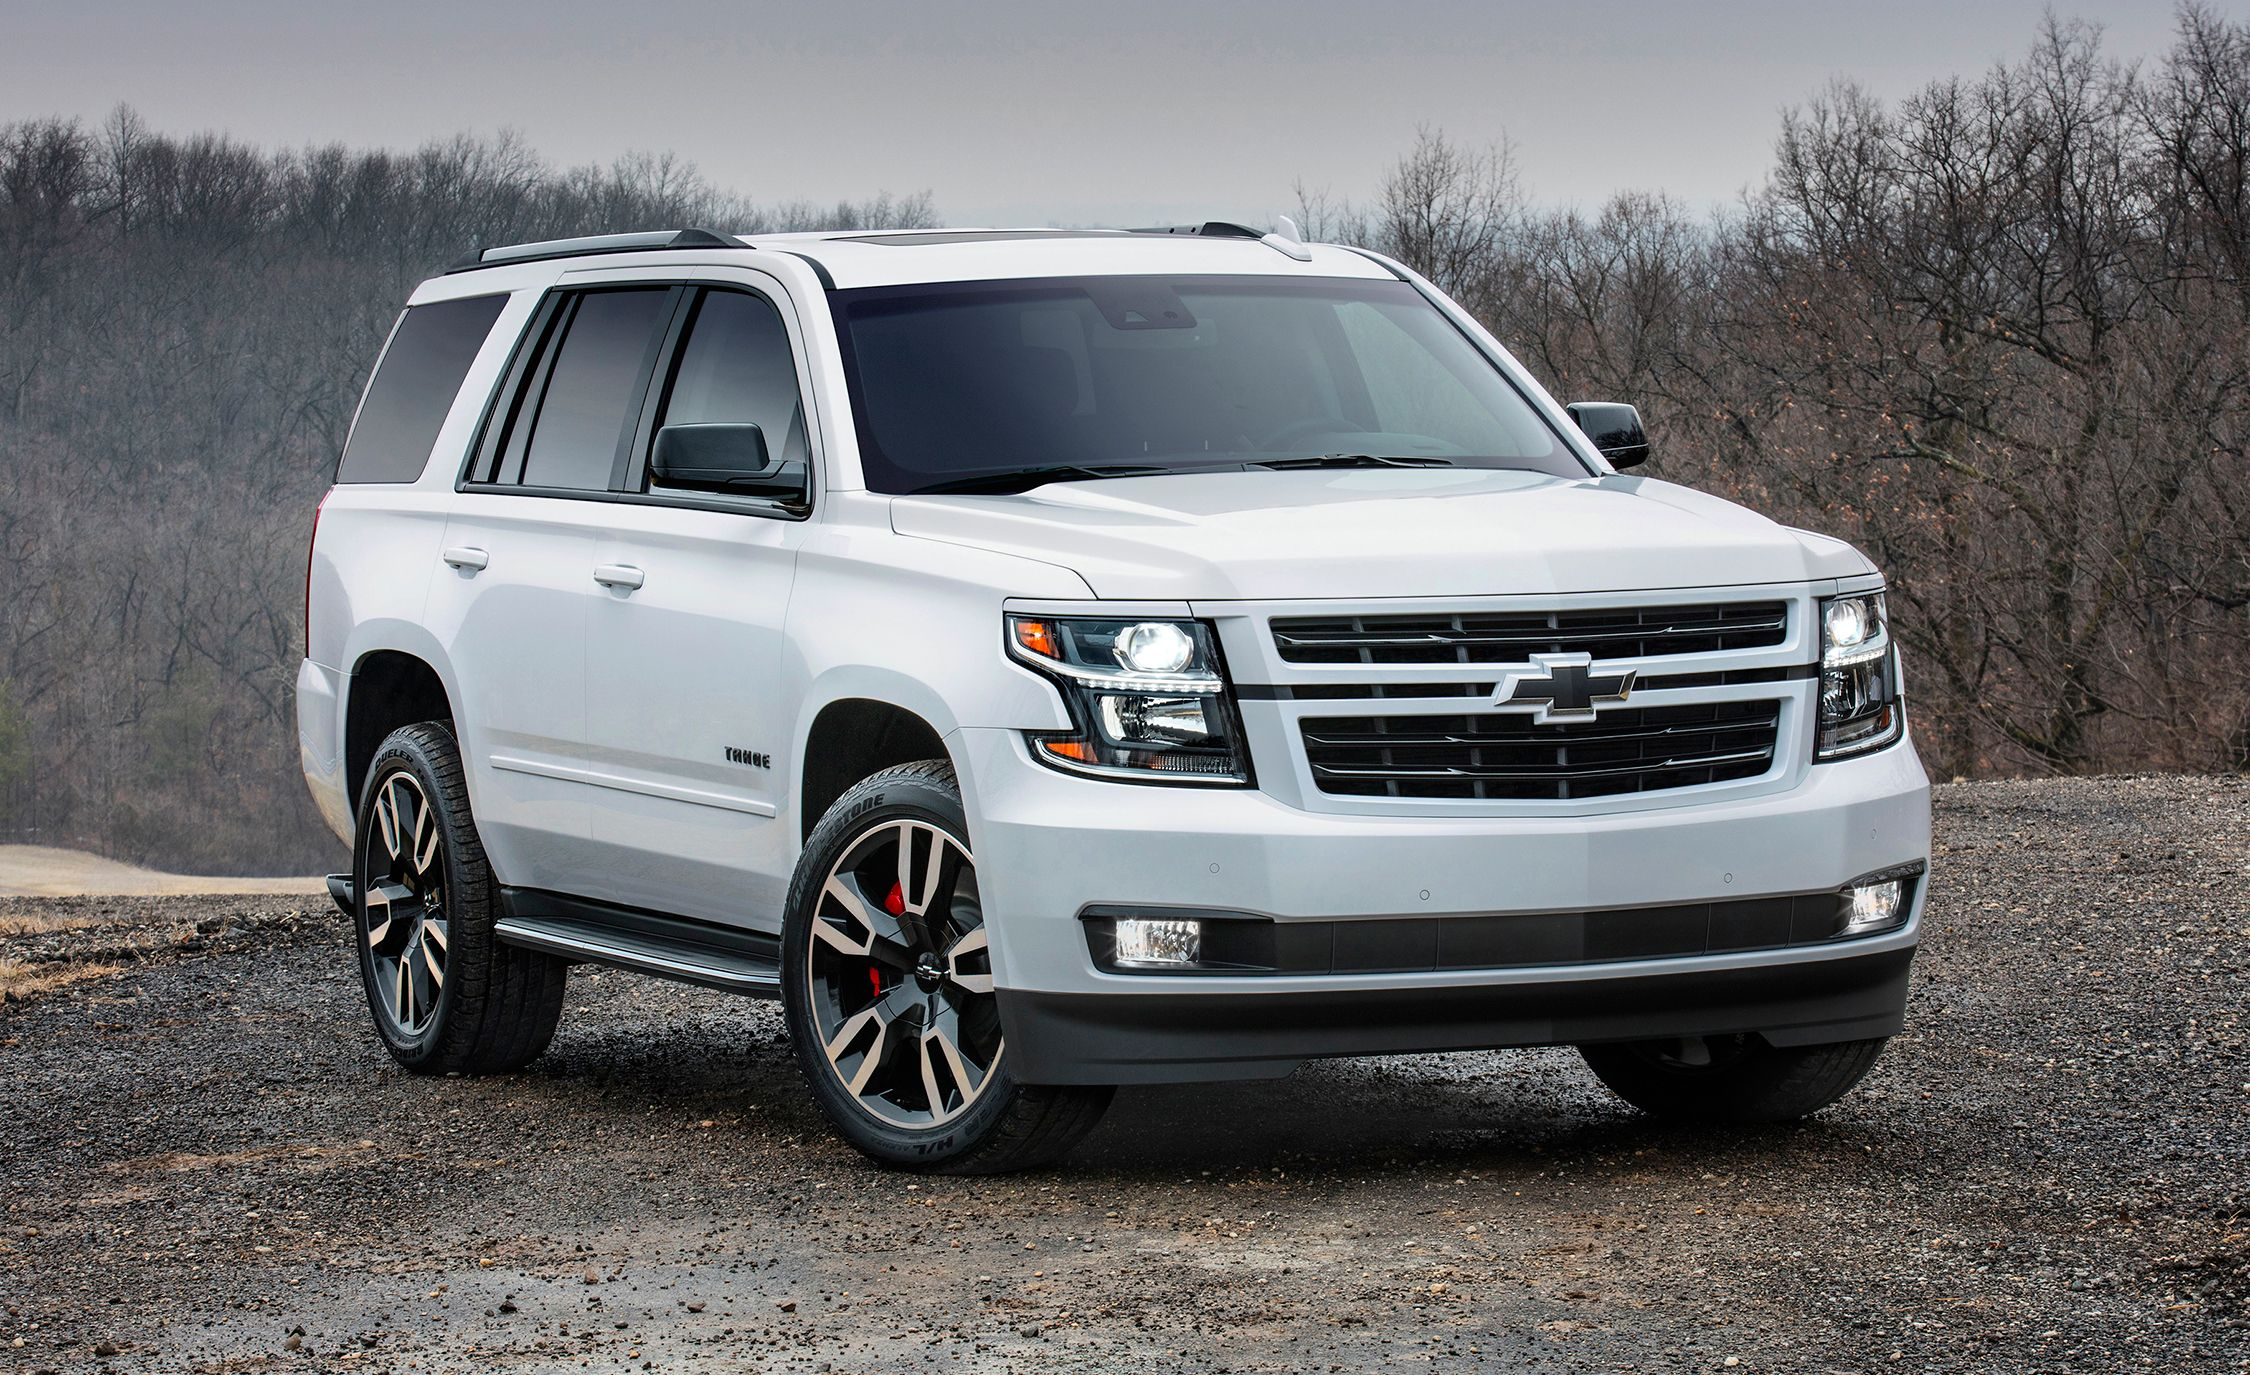 Best Suv On Gas 2019 10 Best Full Size SUVs of 2019 – Every Large SUV, Ranked